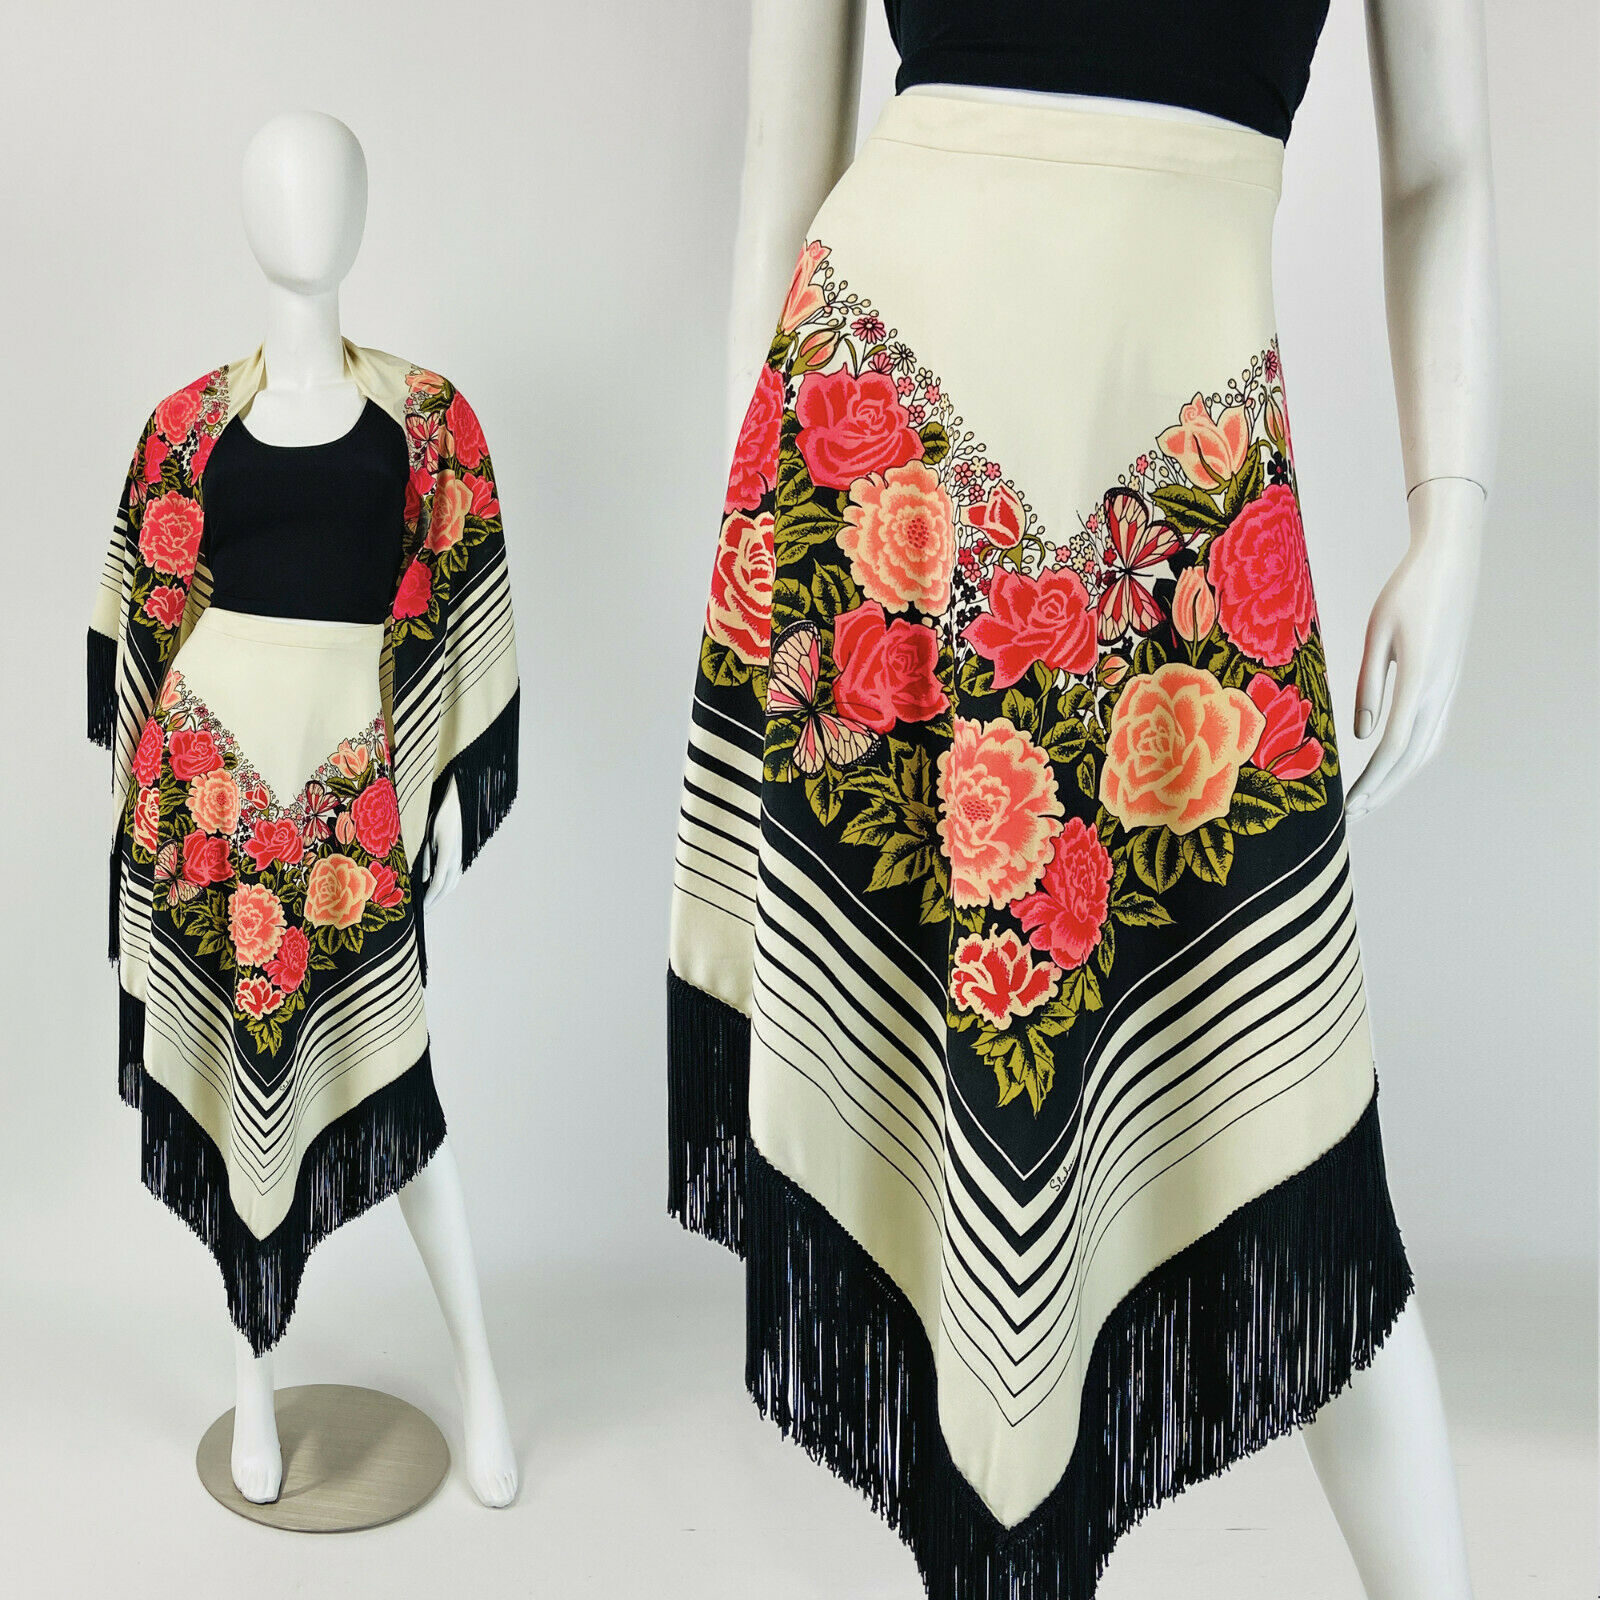 size 6 small S vintage two piece floral outfit 70s novelty print skirt and blouse set